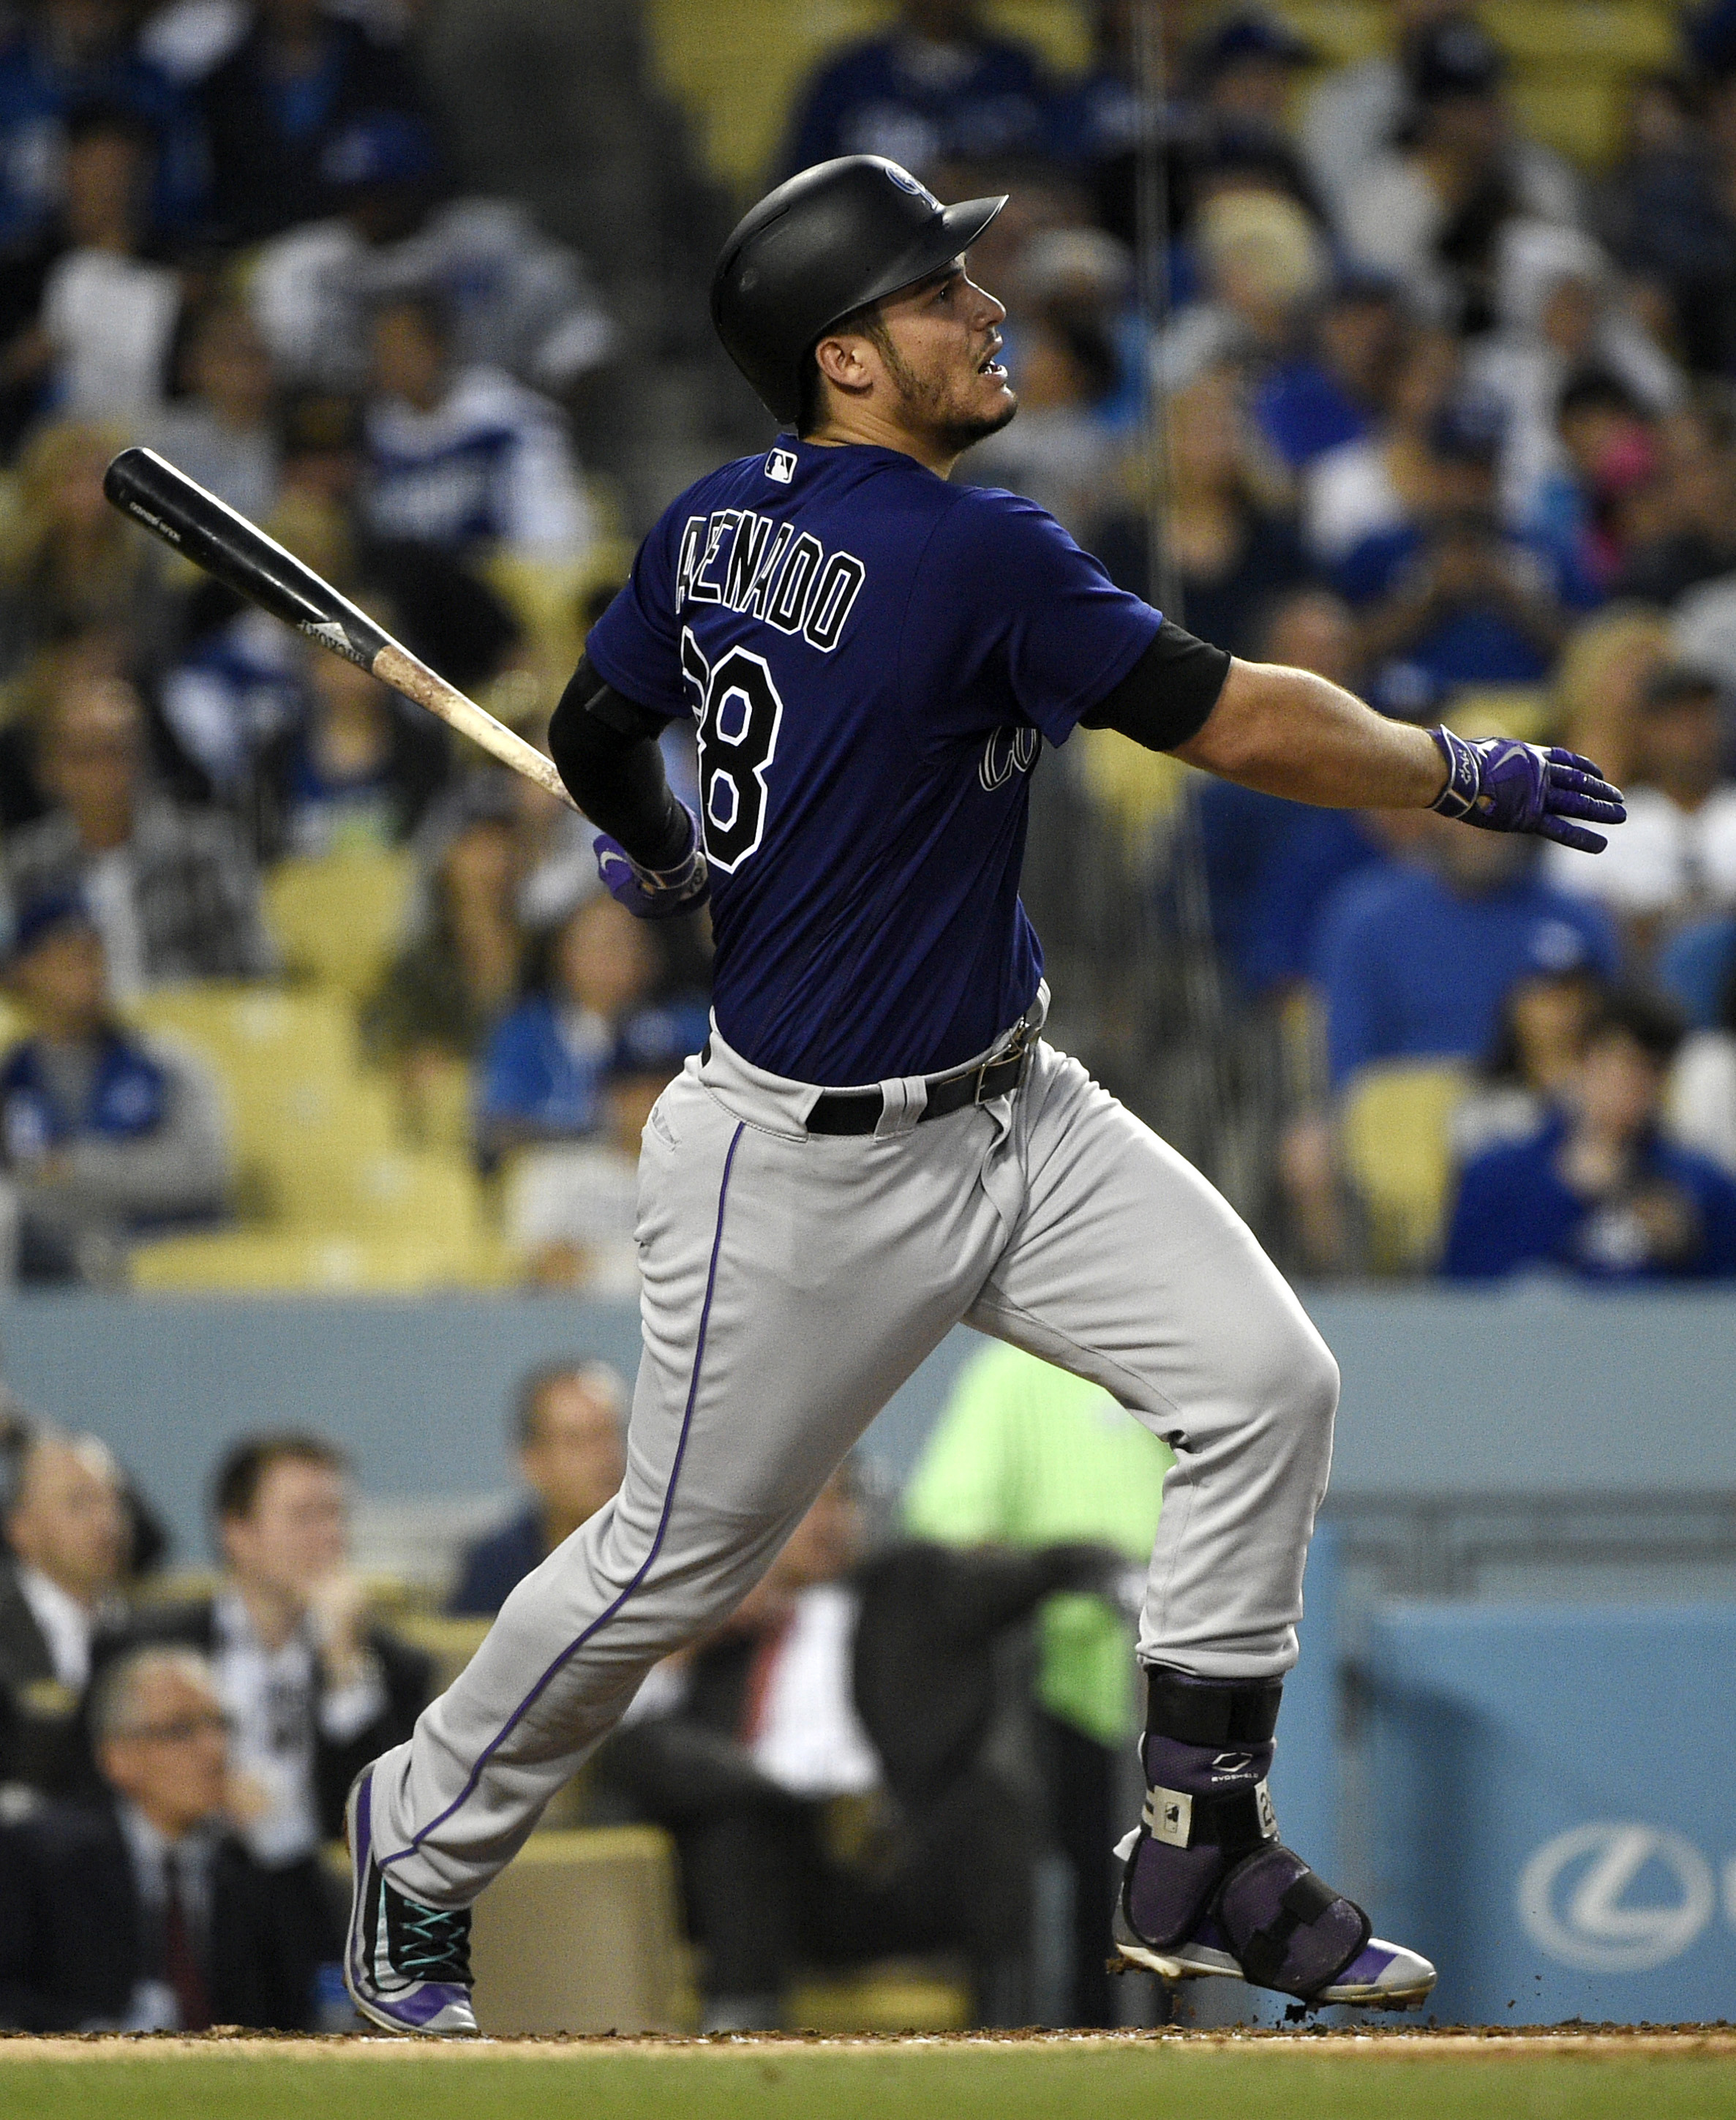 Colorado Rockies' Nolan Arenado watches his RBI double off Los Angeles Dodgers starting pitcher Julio Urias during the third inning of a baseball game in Los Angeles, Tuesday, June 7, 2016. (AP Photo/Kelvin Kuo)